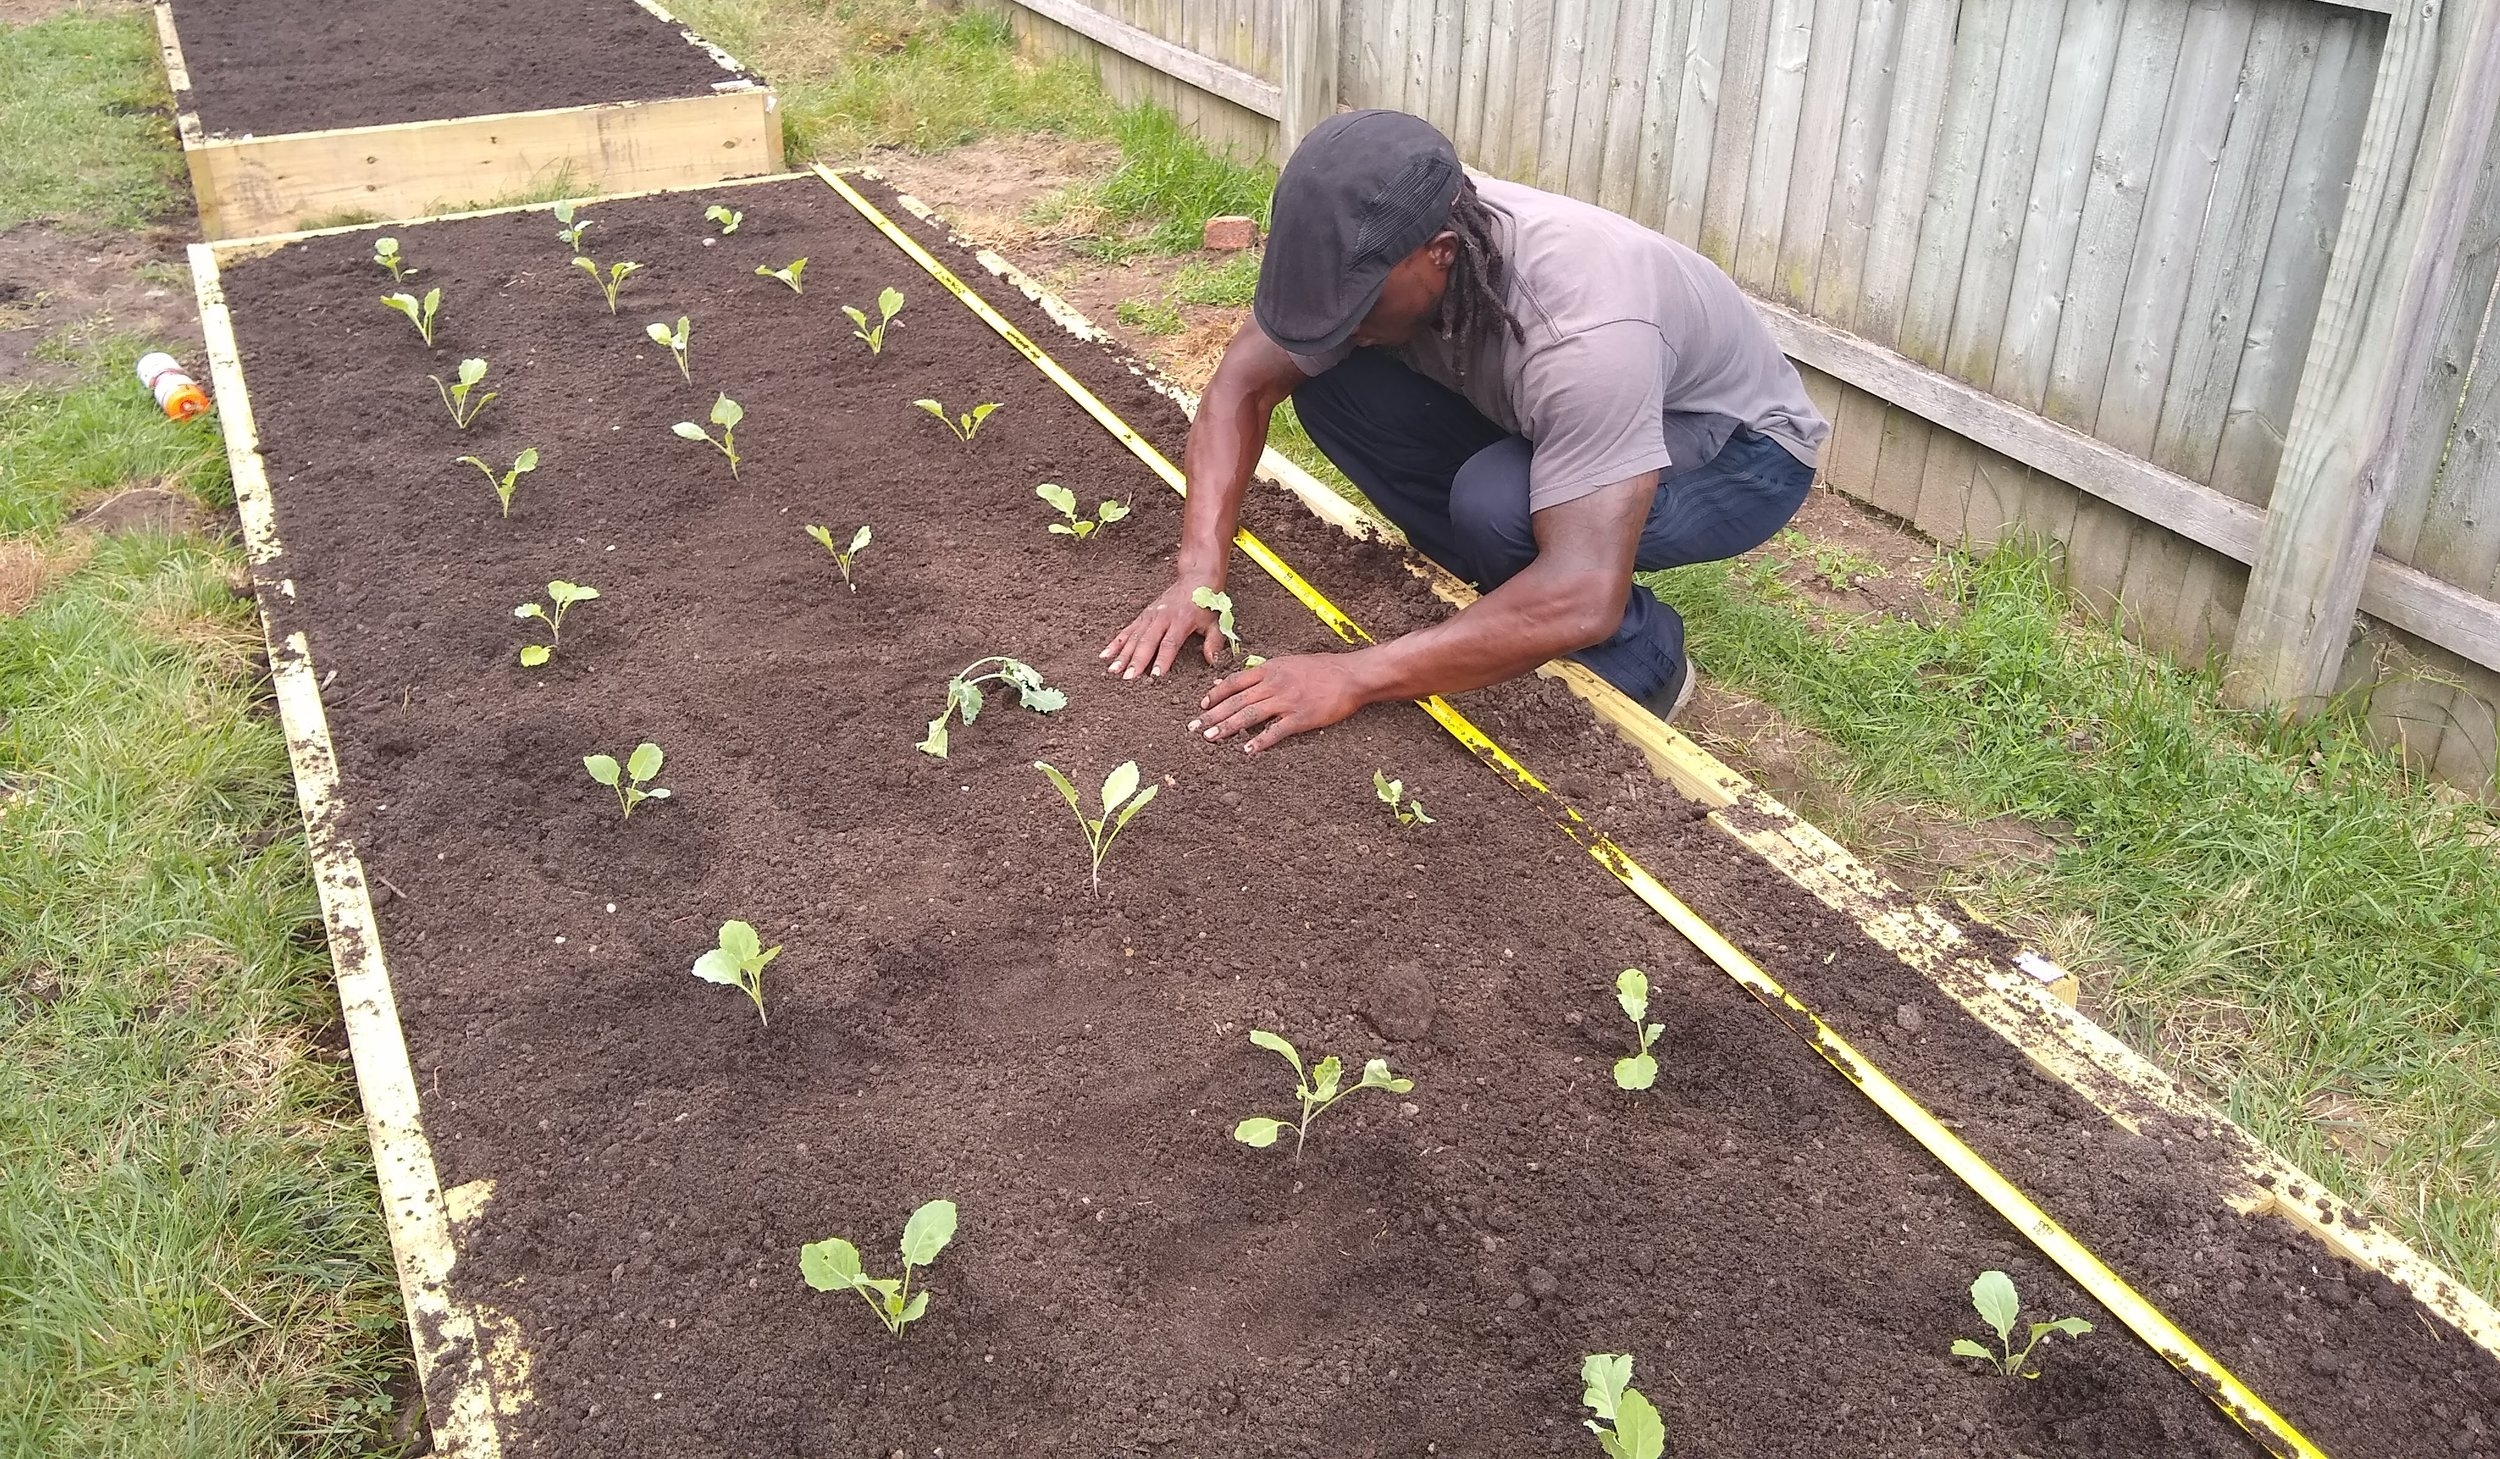 Detroit Michigan - A healthy eating initiative focusing on sustainable food production and community involvement.